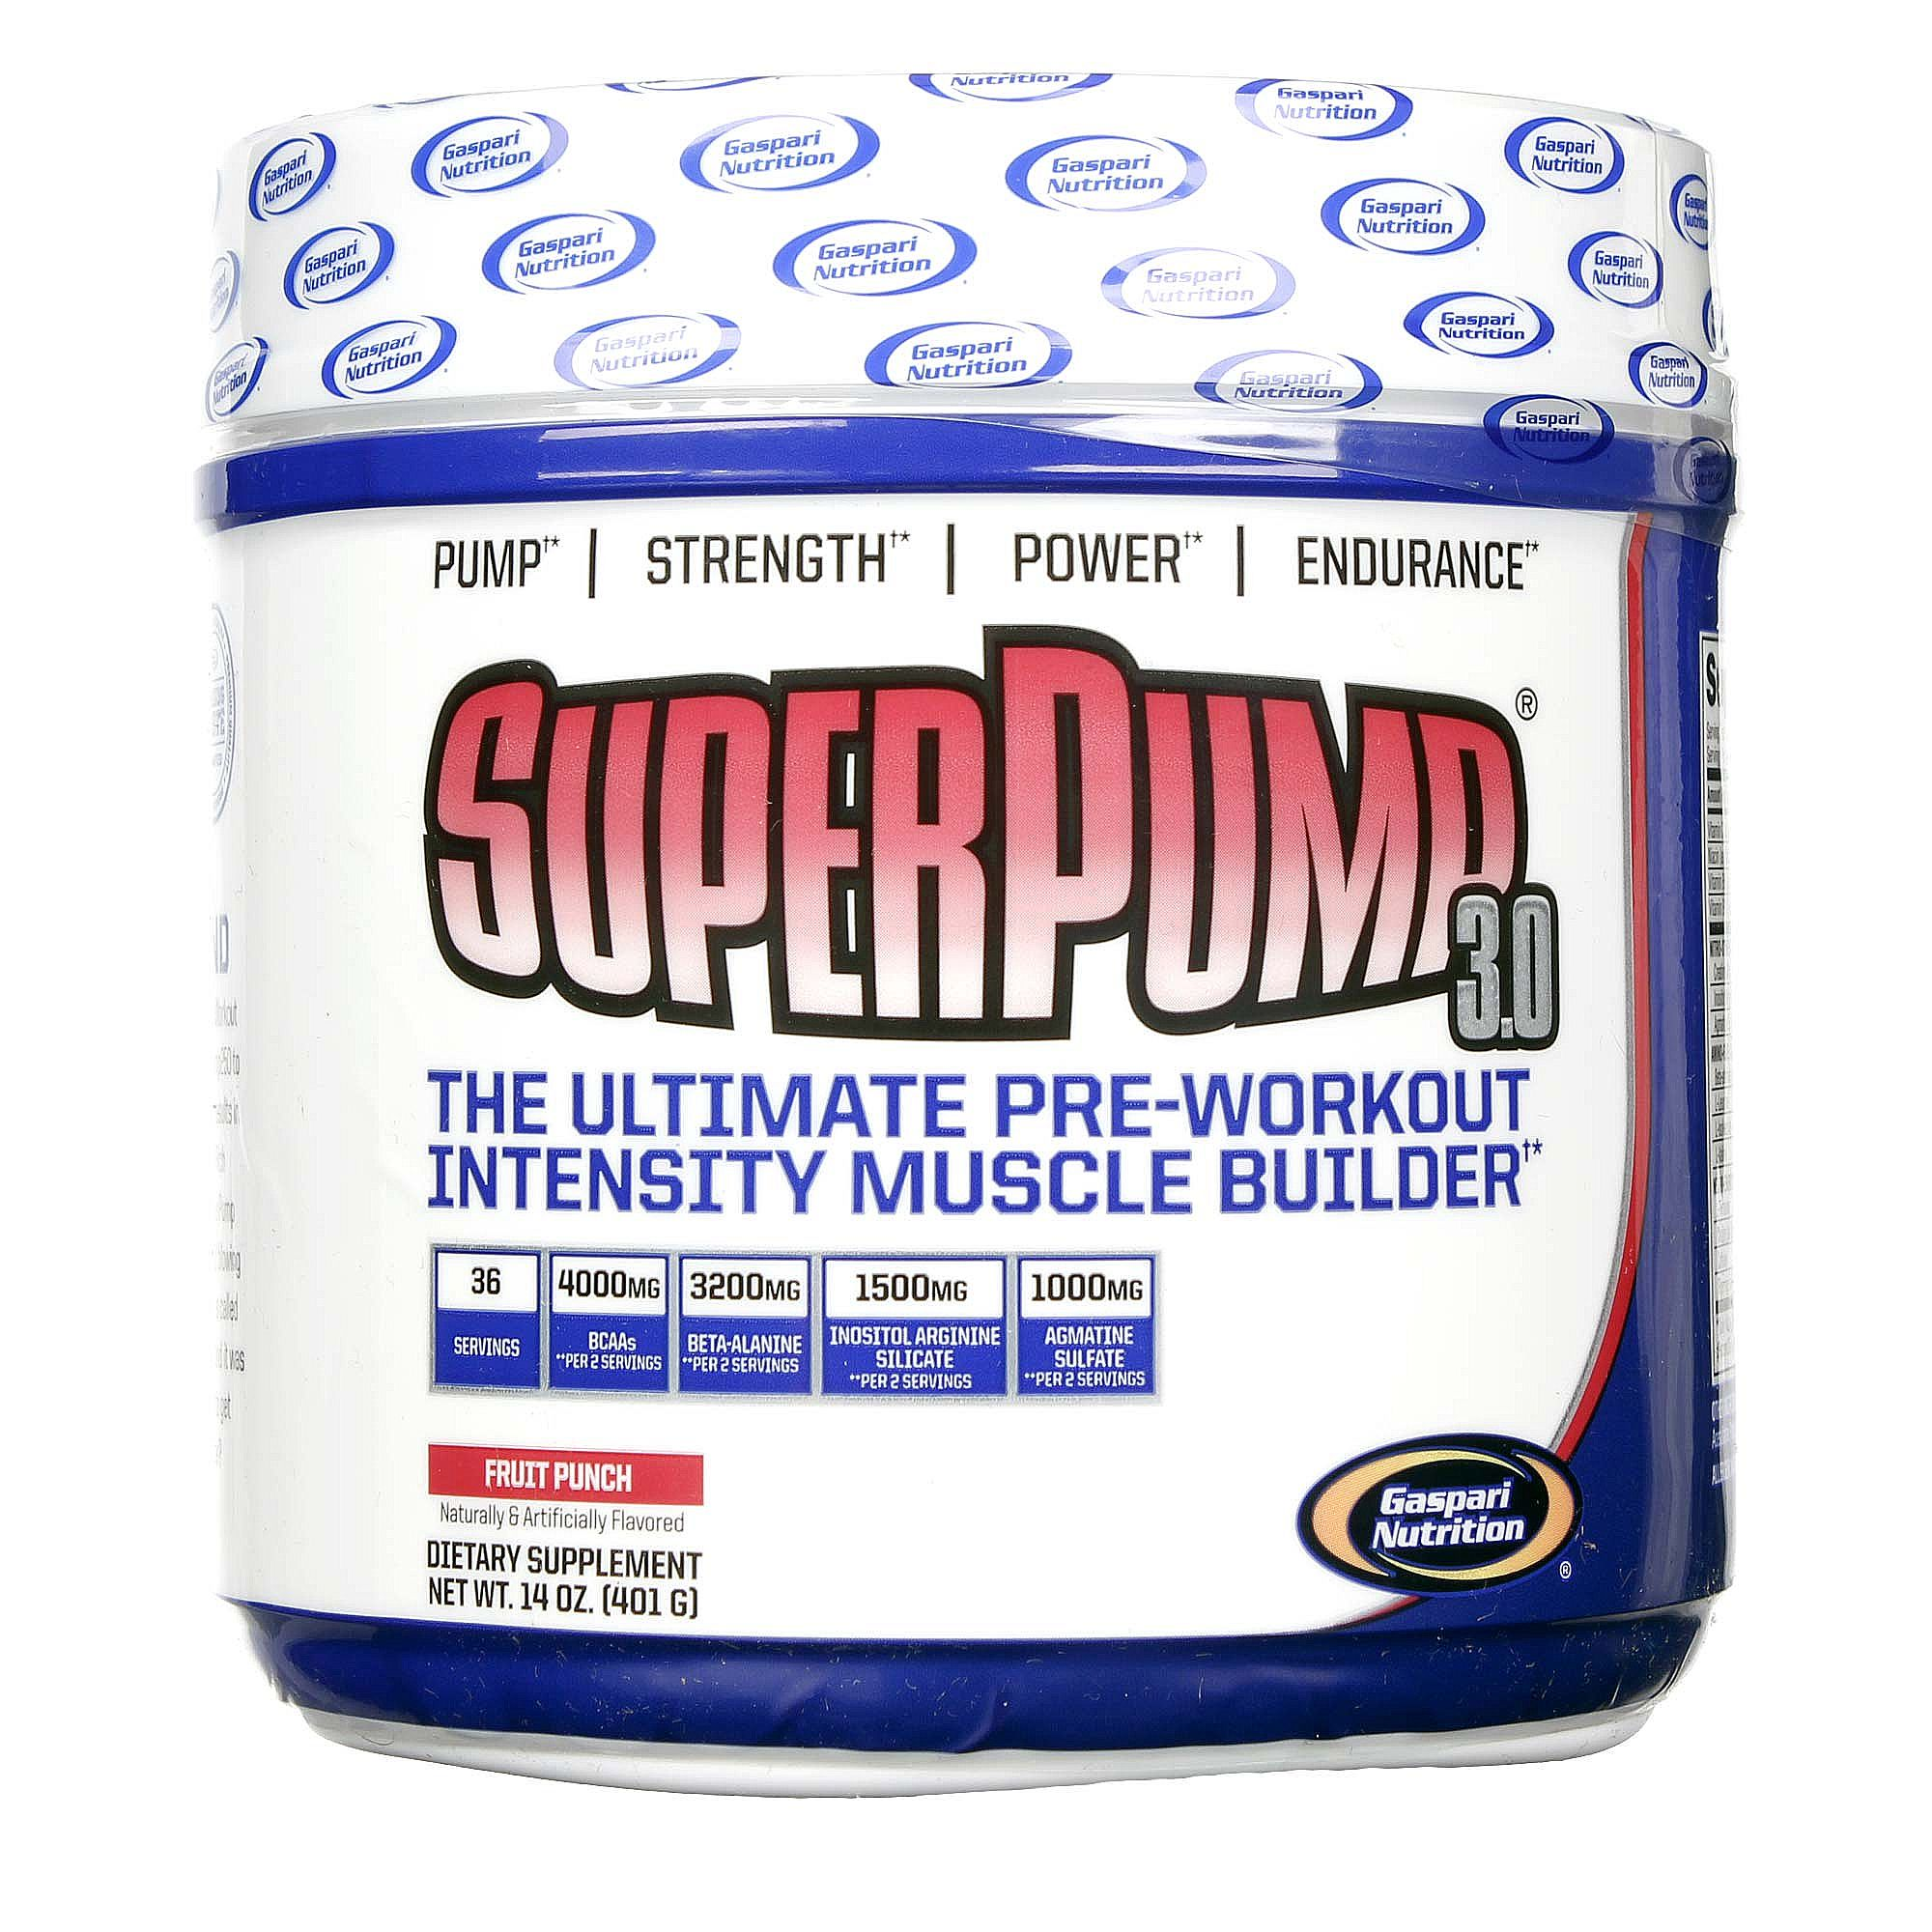 Gaspari Nutrition SuperPump 3.0